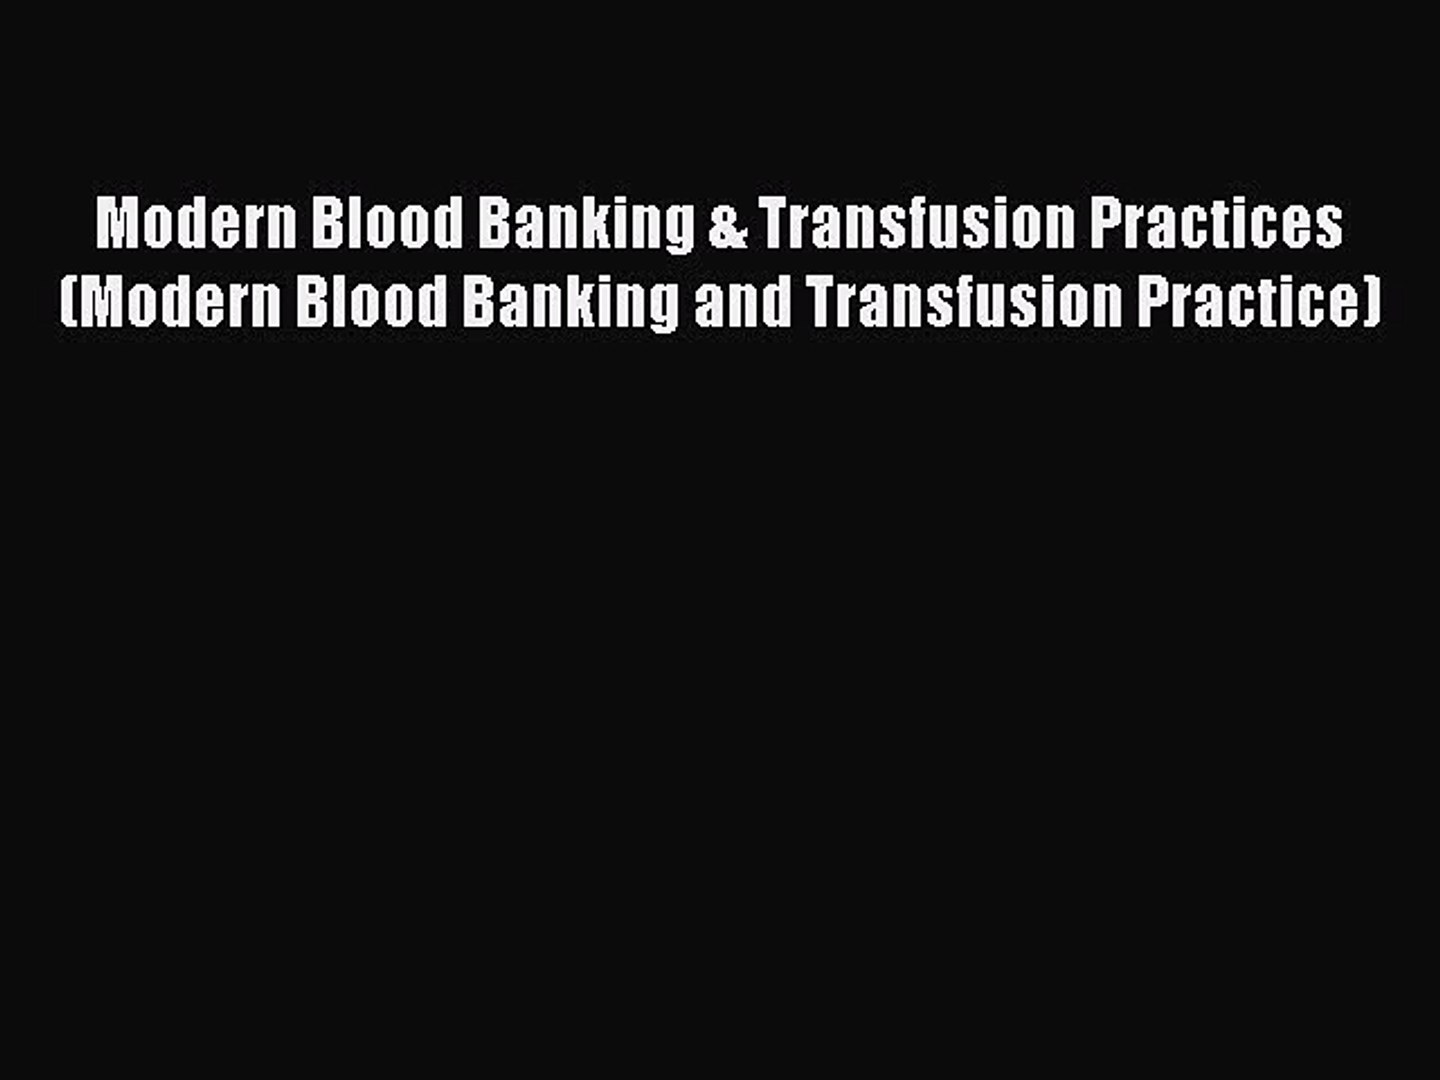 Read Modern Blood Banking & Transfusion Practices (Modern Blood Banking and Transfusion Practice